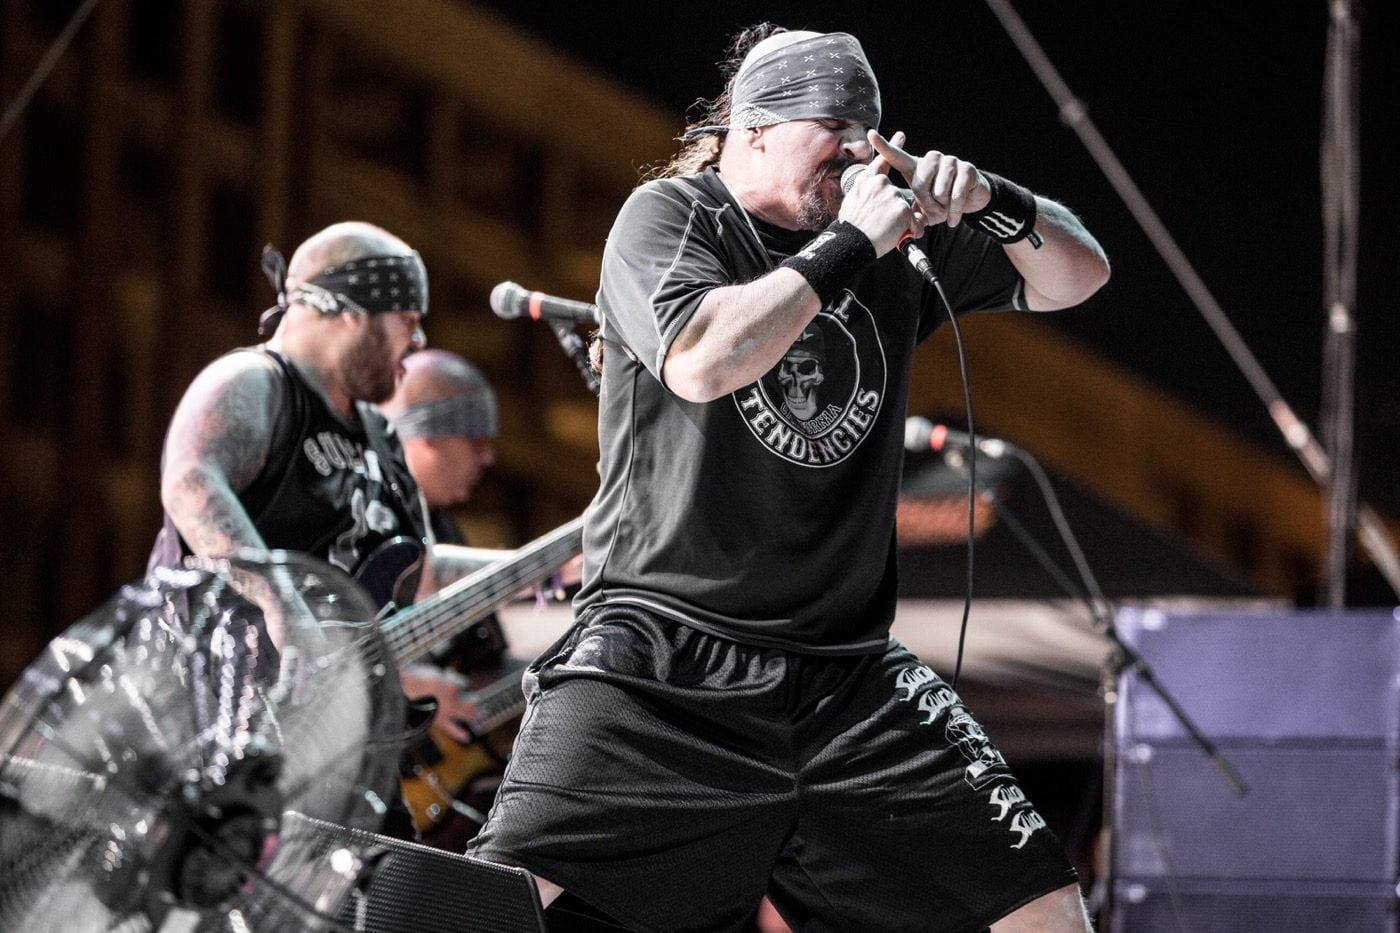 Suicidal Tendencies Punk Rock Bowling